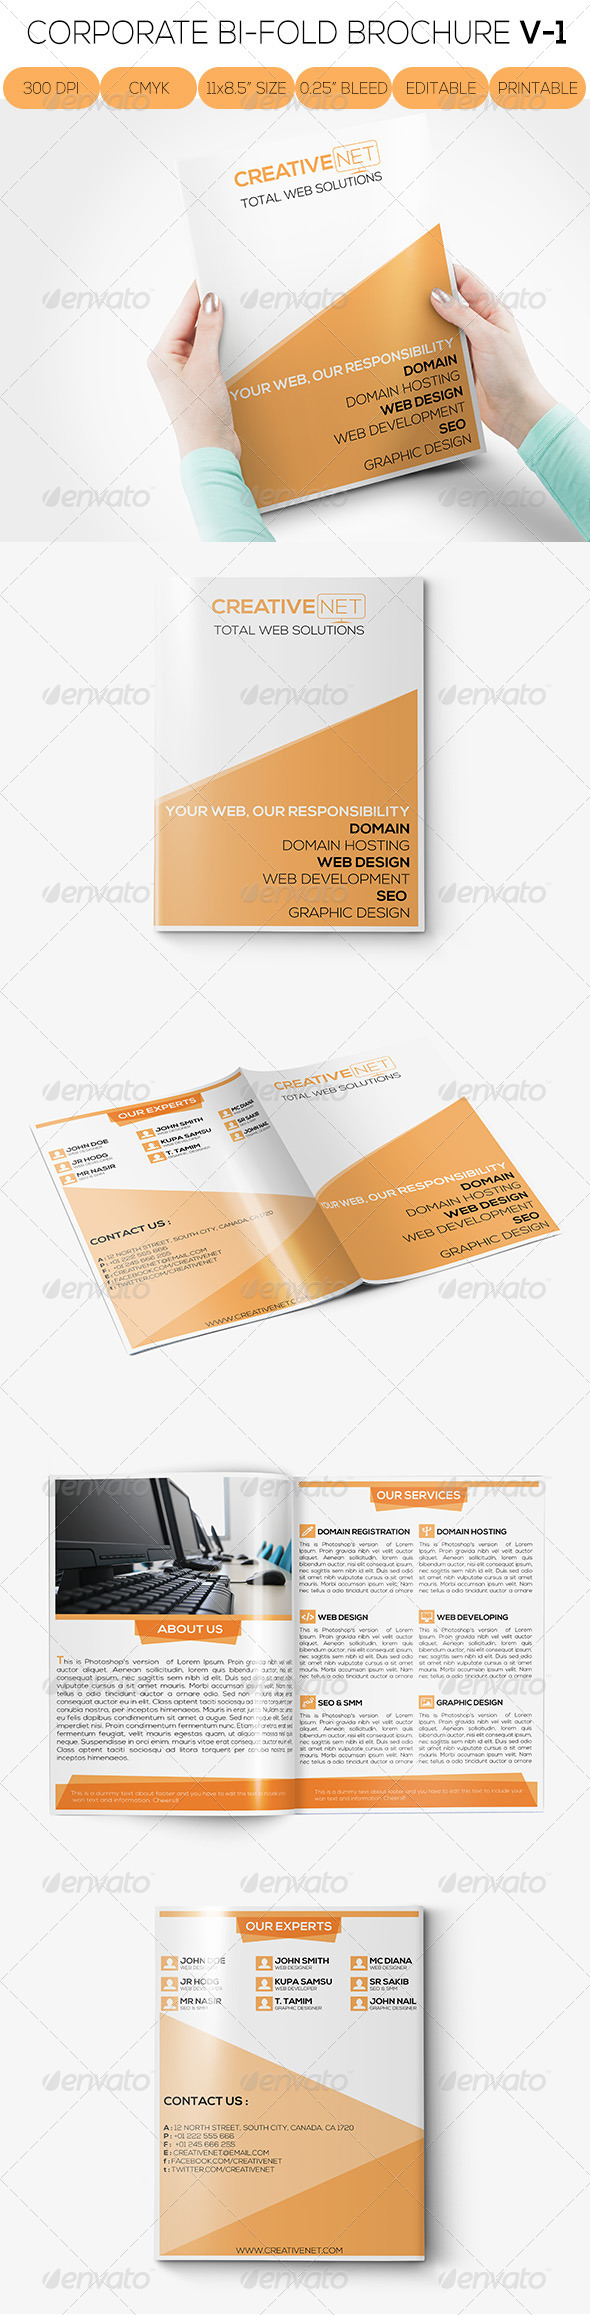 GraphicRiver Web Proposal Bi-Fold Brochure V-1 6854103